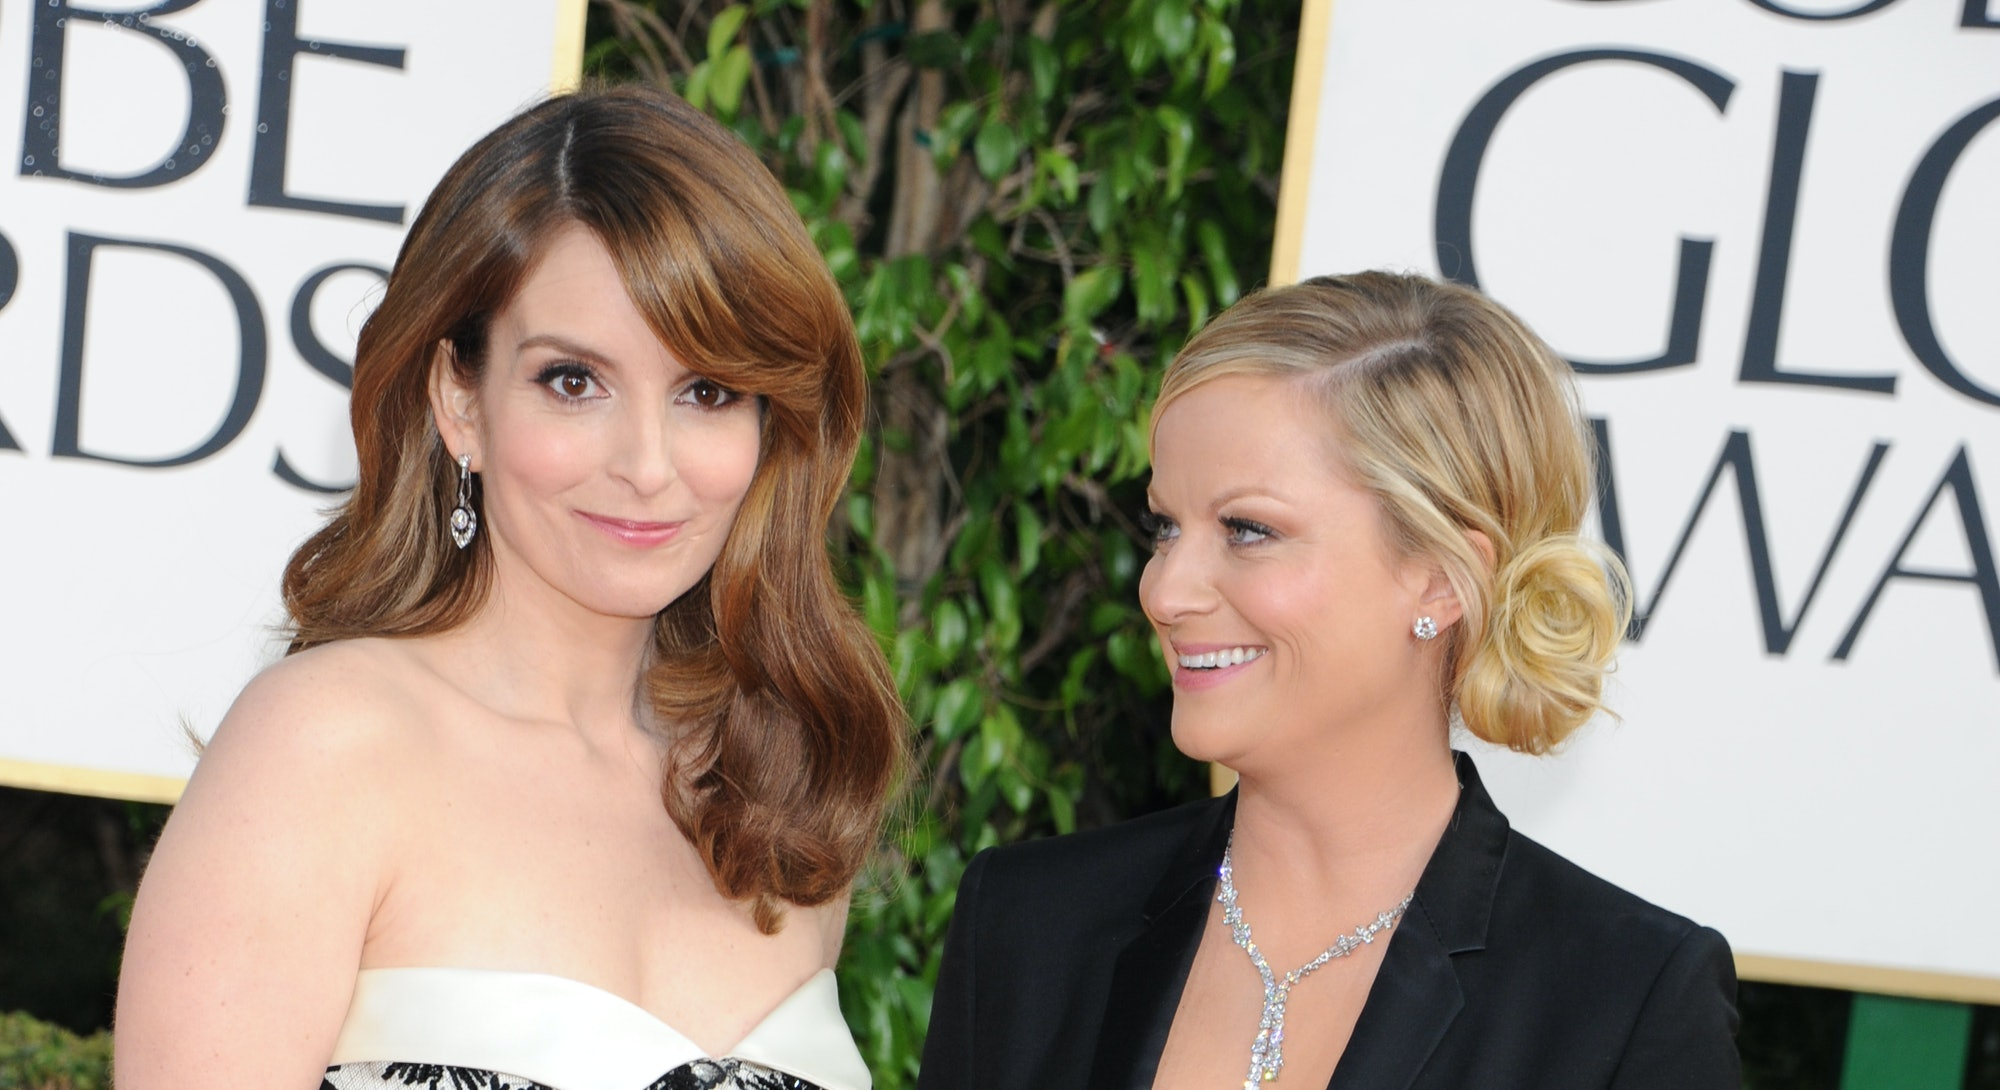 Amy Poehler and Tina Fey are comedians, writers, and friends known for their wit and feminism.